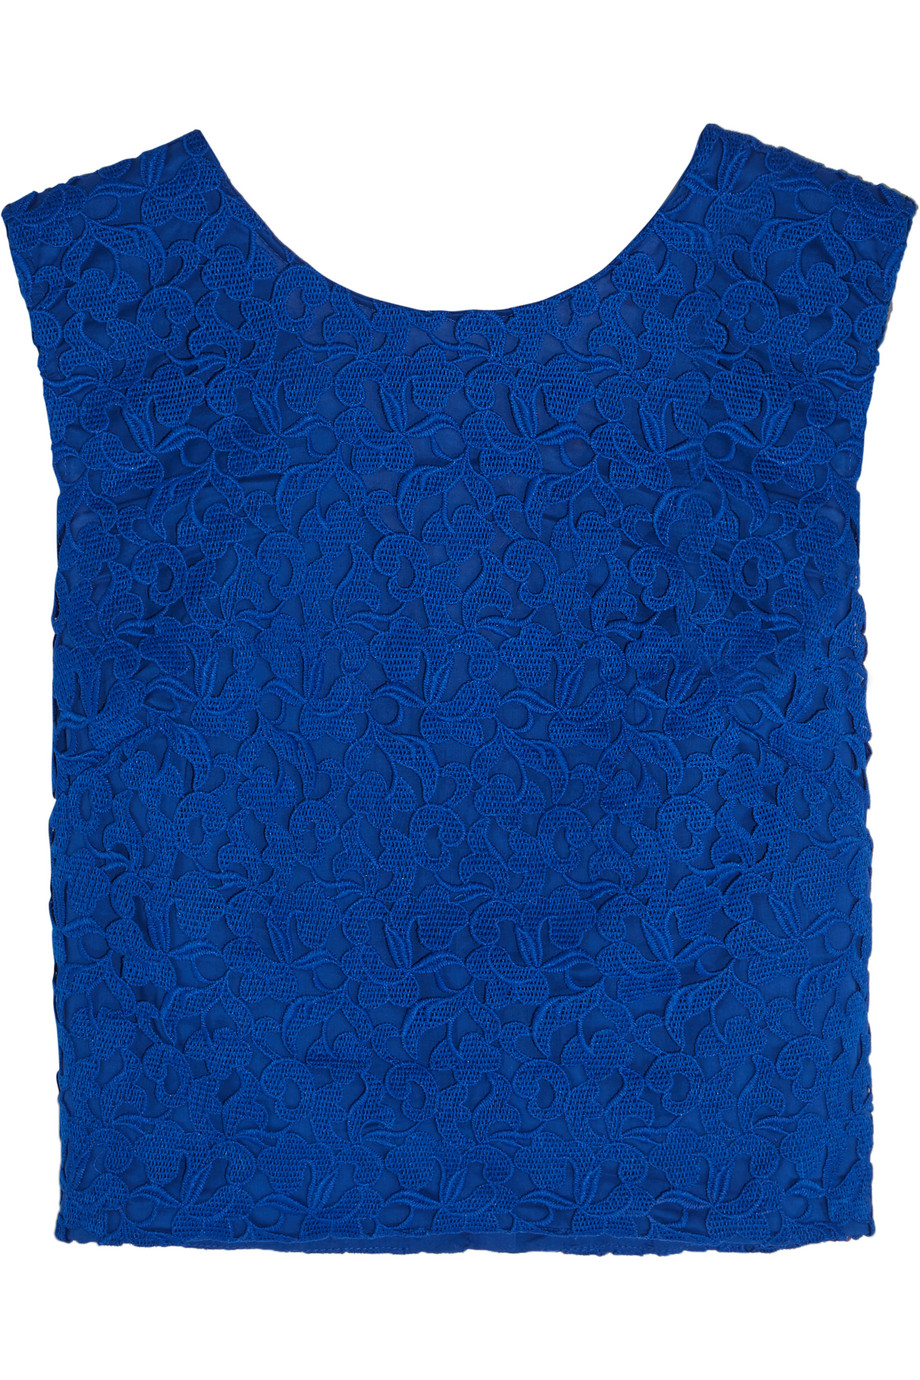 J.Crew Collection Liola Cropped Guipure Lace Top, Bright Blue, Women's, Size: 0